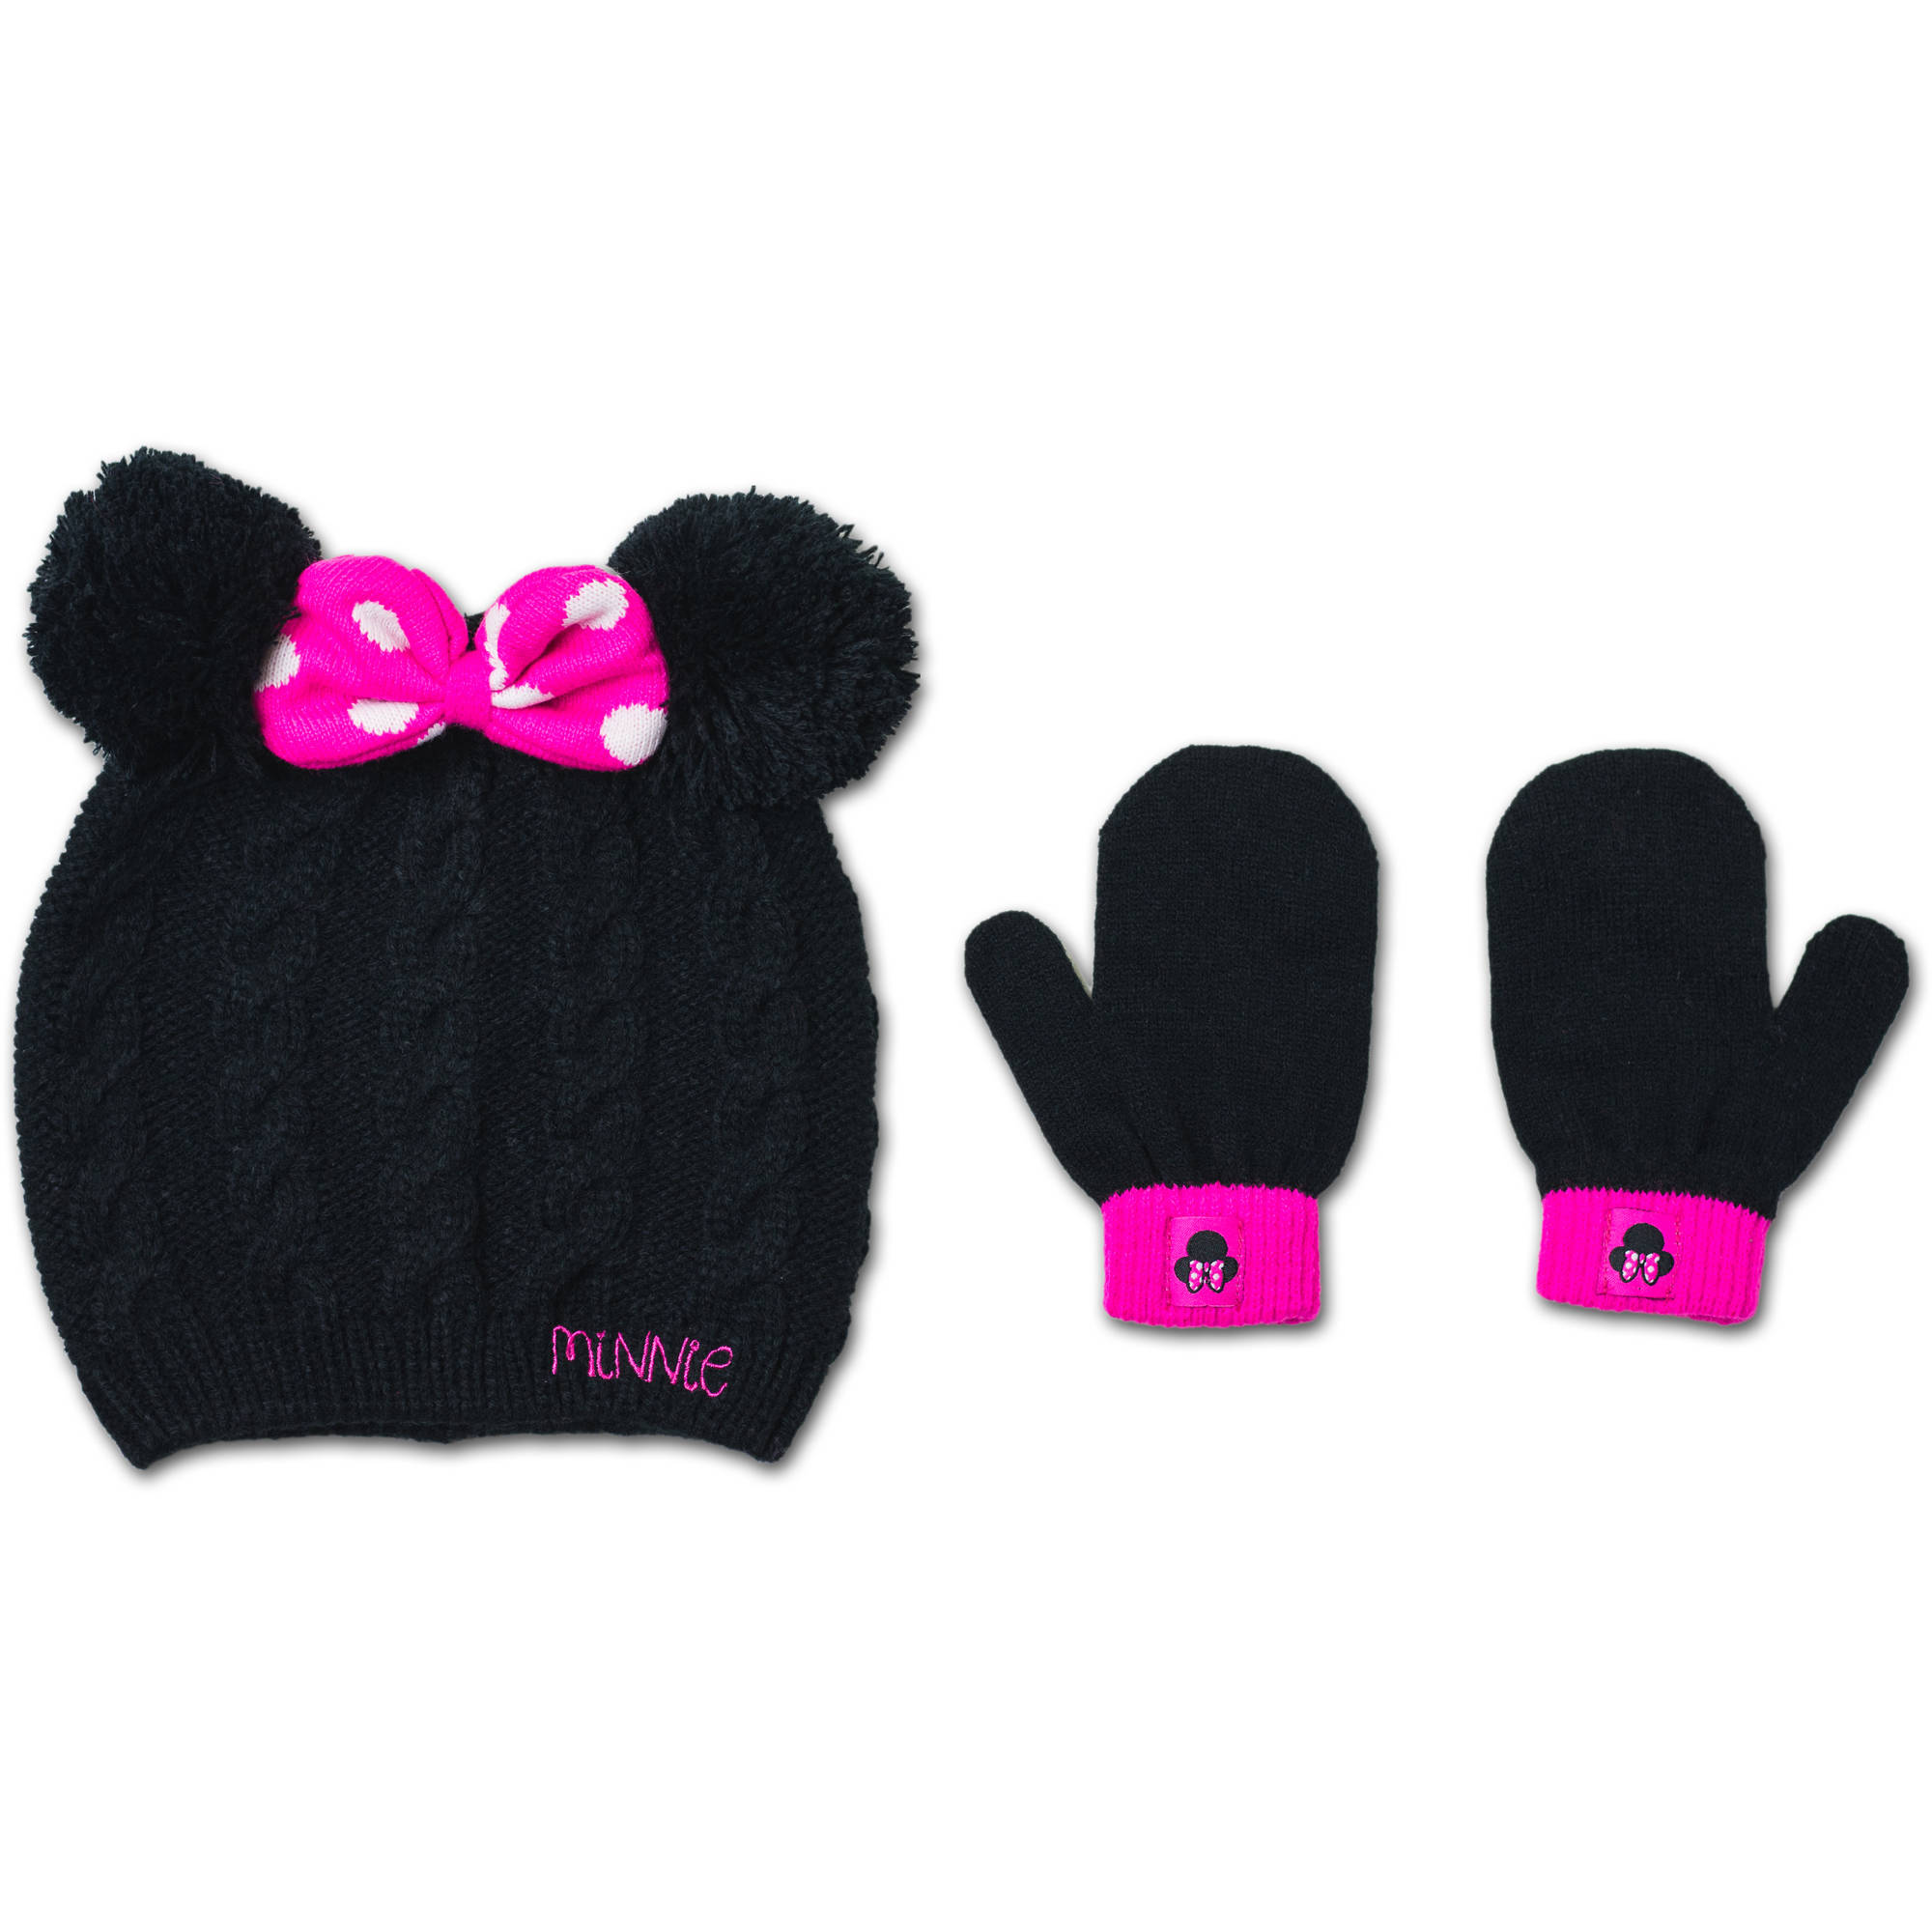 c1f9d3726796d Minnie Mouse - Baby Toddler Girl Hat and Mitten Set - Walmart.com